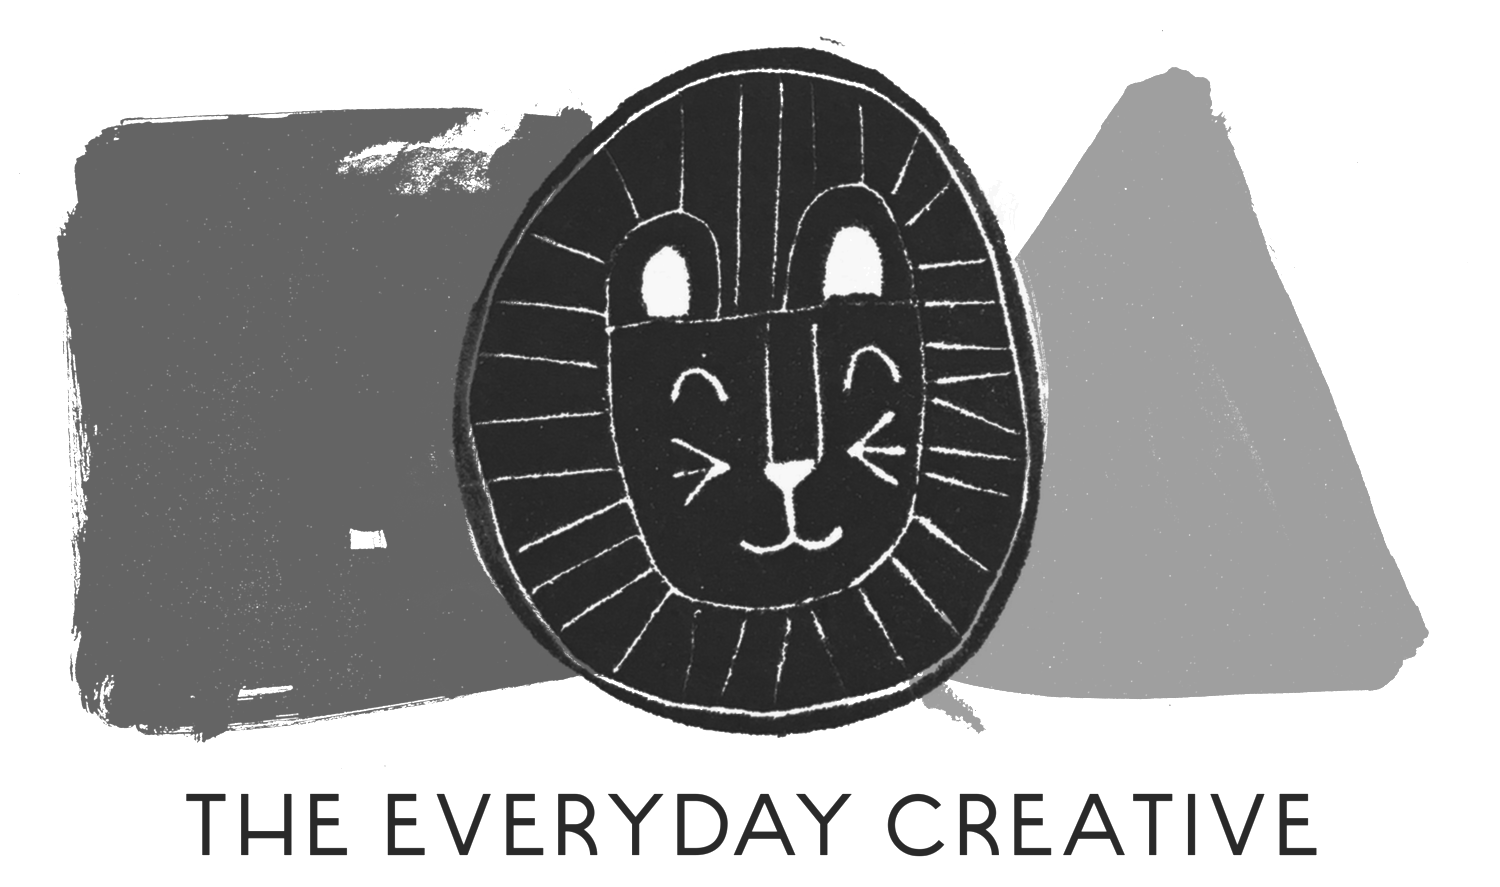 The Everyday Creative | Lifestyle Services + Products Encouraging a New Idea of Growth